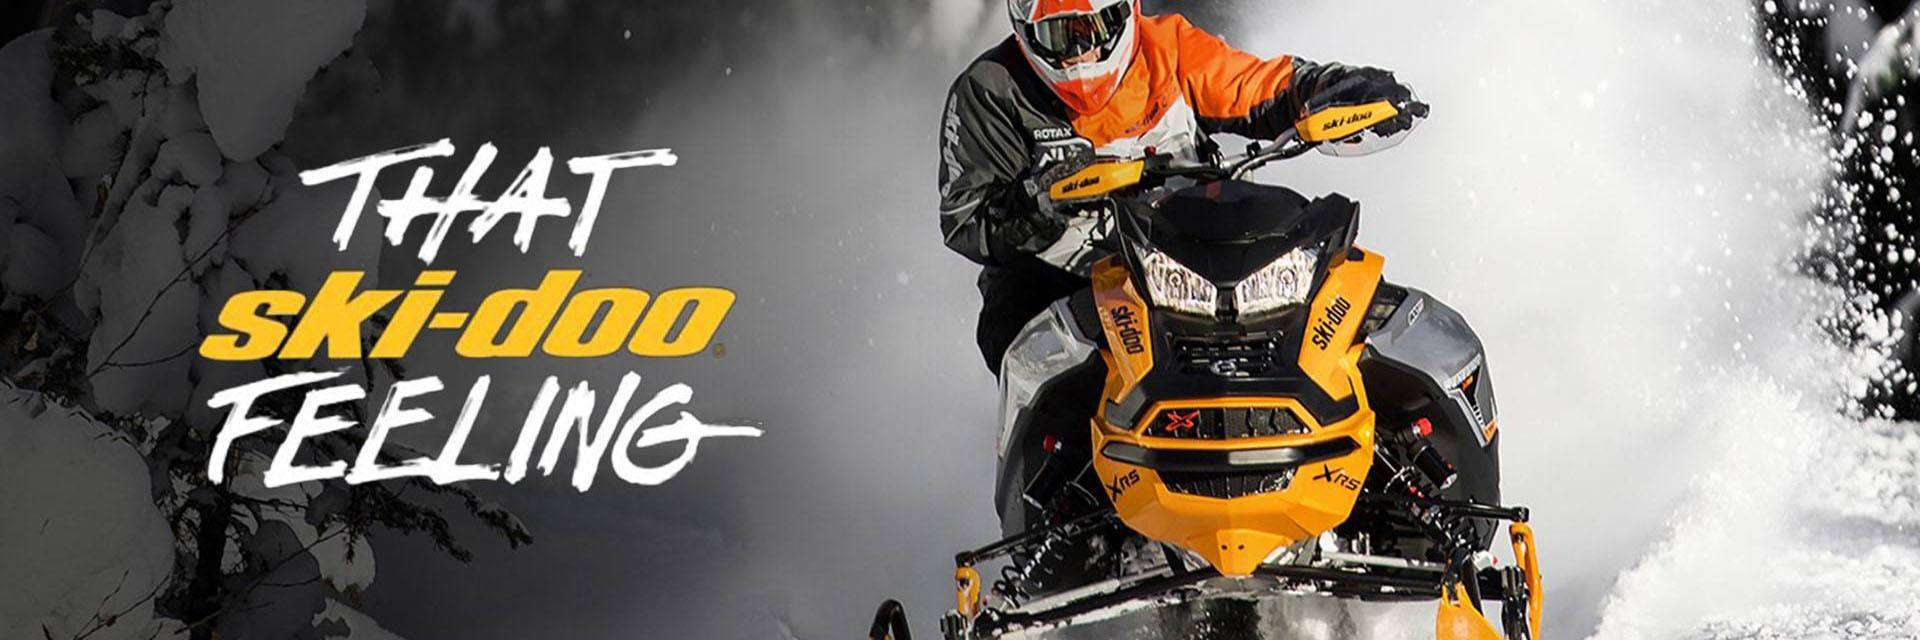 New Ski-Doo Models For Sale at Benny's Power in Chester, VT